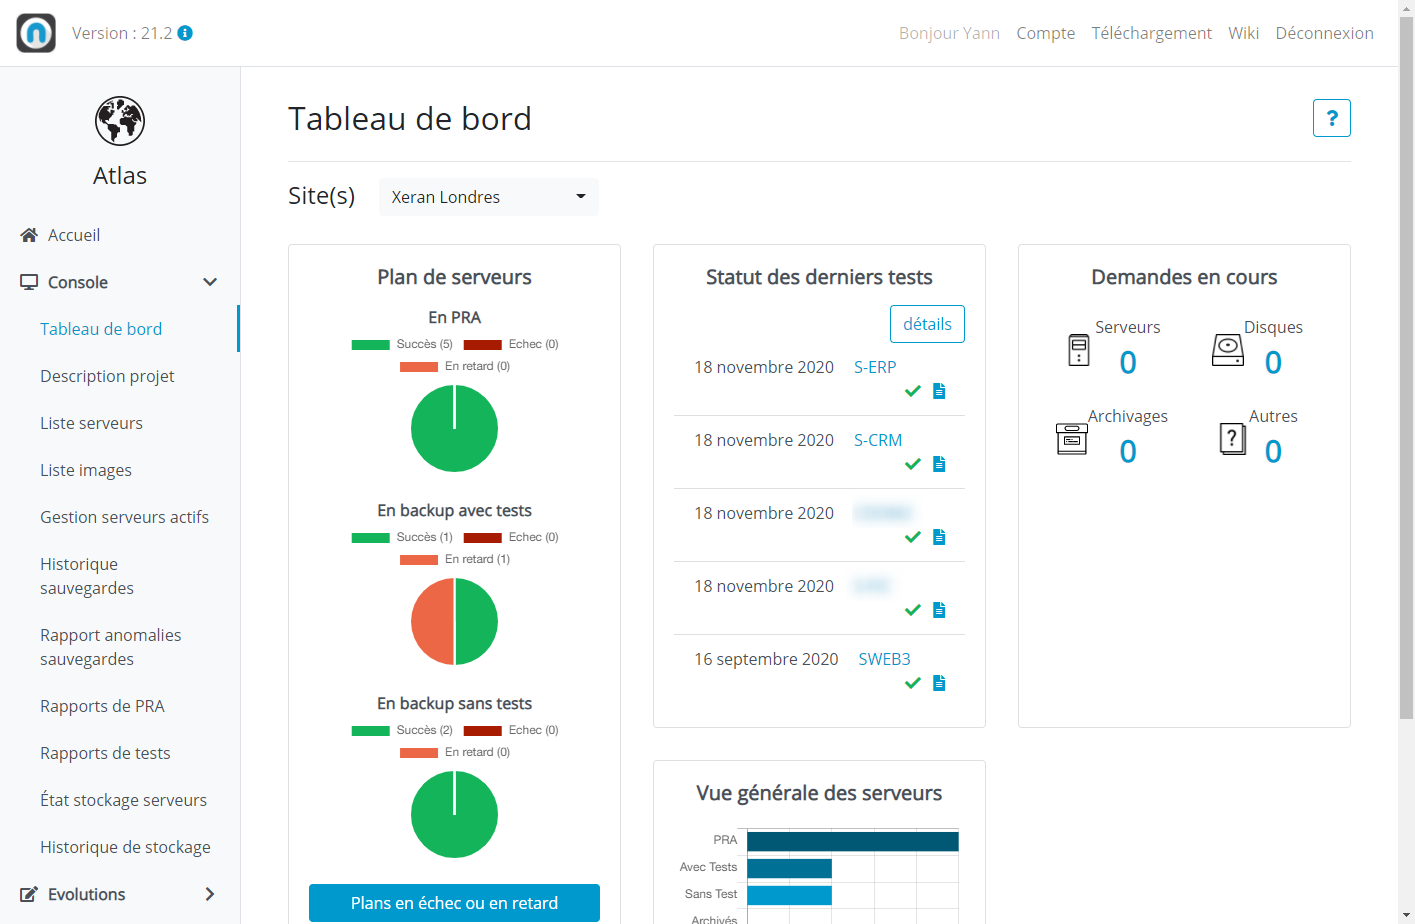 UCover dashboard with every backup plan and their status, their test status, and evolution request